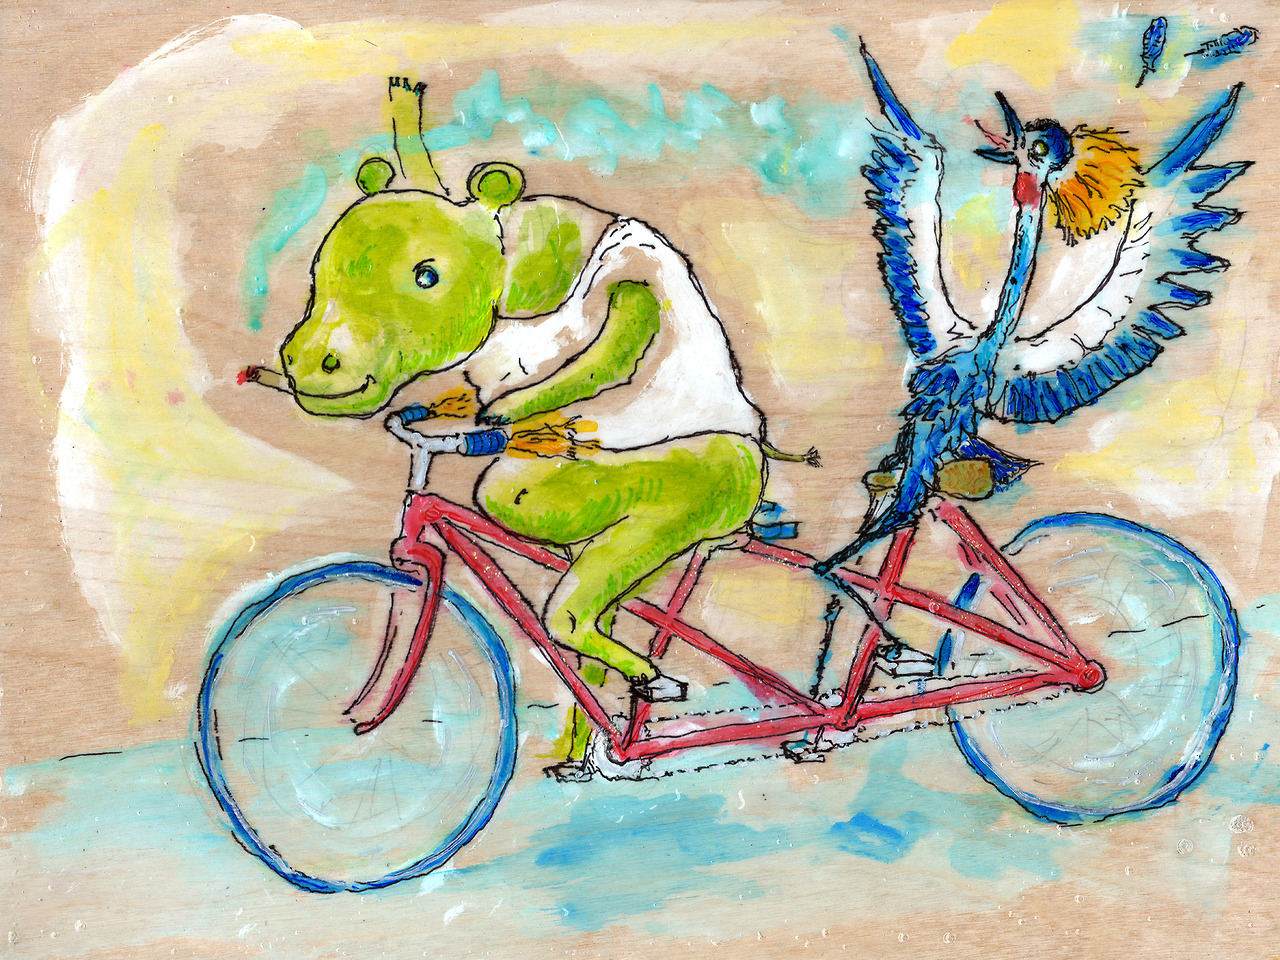 12/23/13 -  An Interspecies Pantsless Joyride.    This is a kickstarter piece for my good friends Keith and Jessie. They've probably supported my art more than any other folks in existence. And they requested a hippopotamus and a crane on a tandem bike in somewhat subdued colors. Well, there you have it. Hopefully you guys like it. Thanks again for backing the kickstarter!